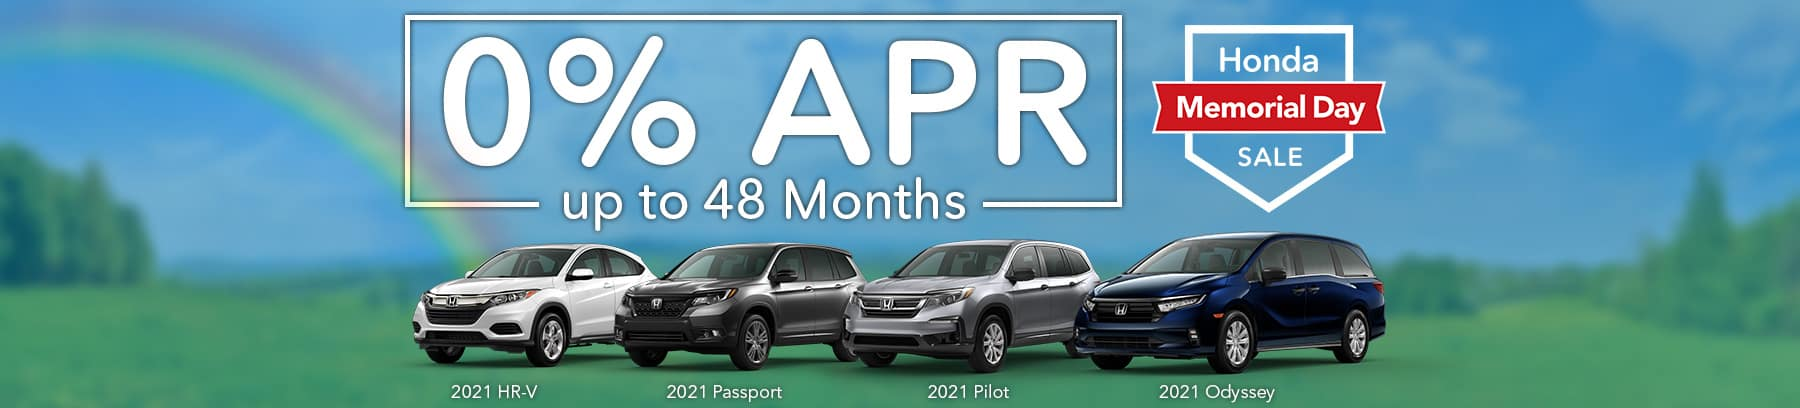 Honda - Memorial Day Sale 0 % APR for up to 48 Months